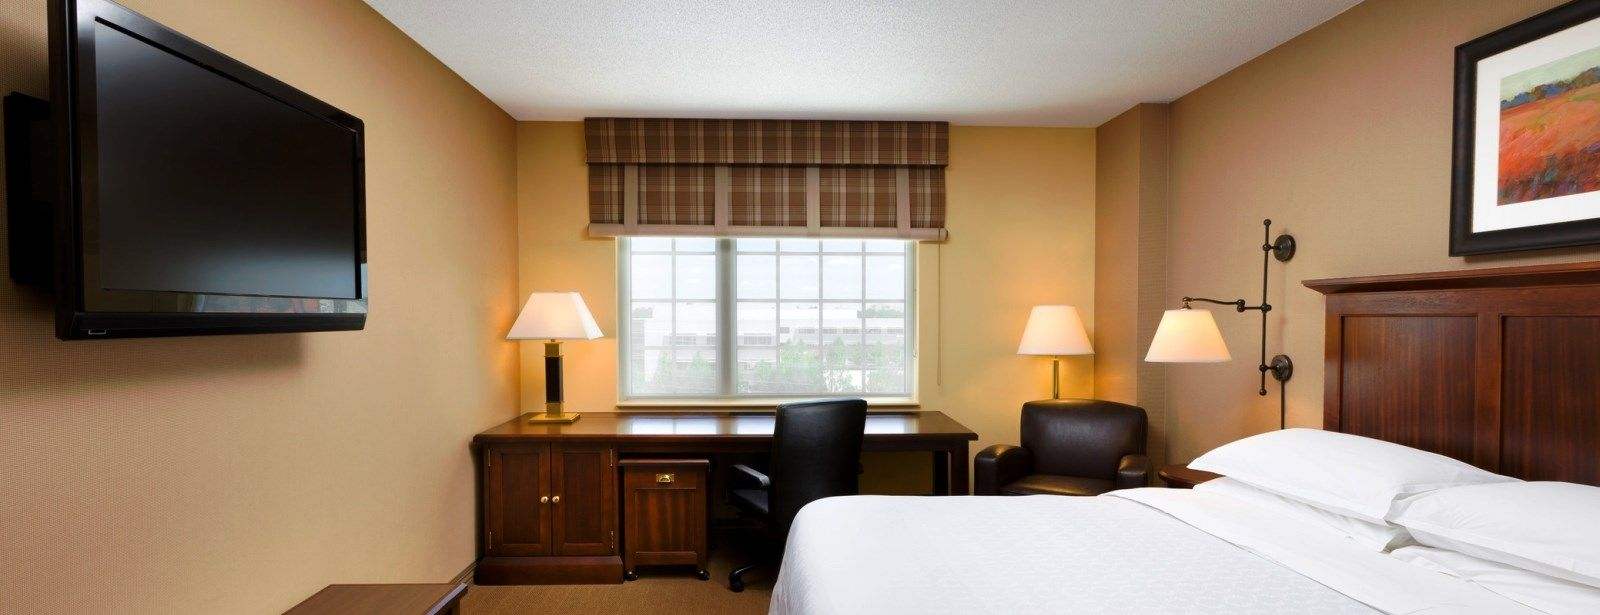 Houston Accommodations - Sheraton Houston West Hotel